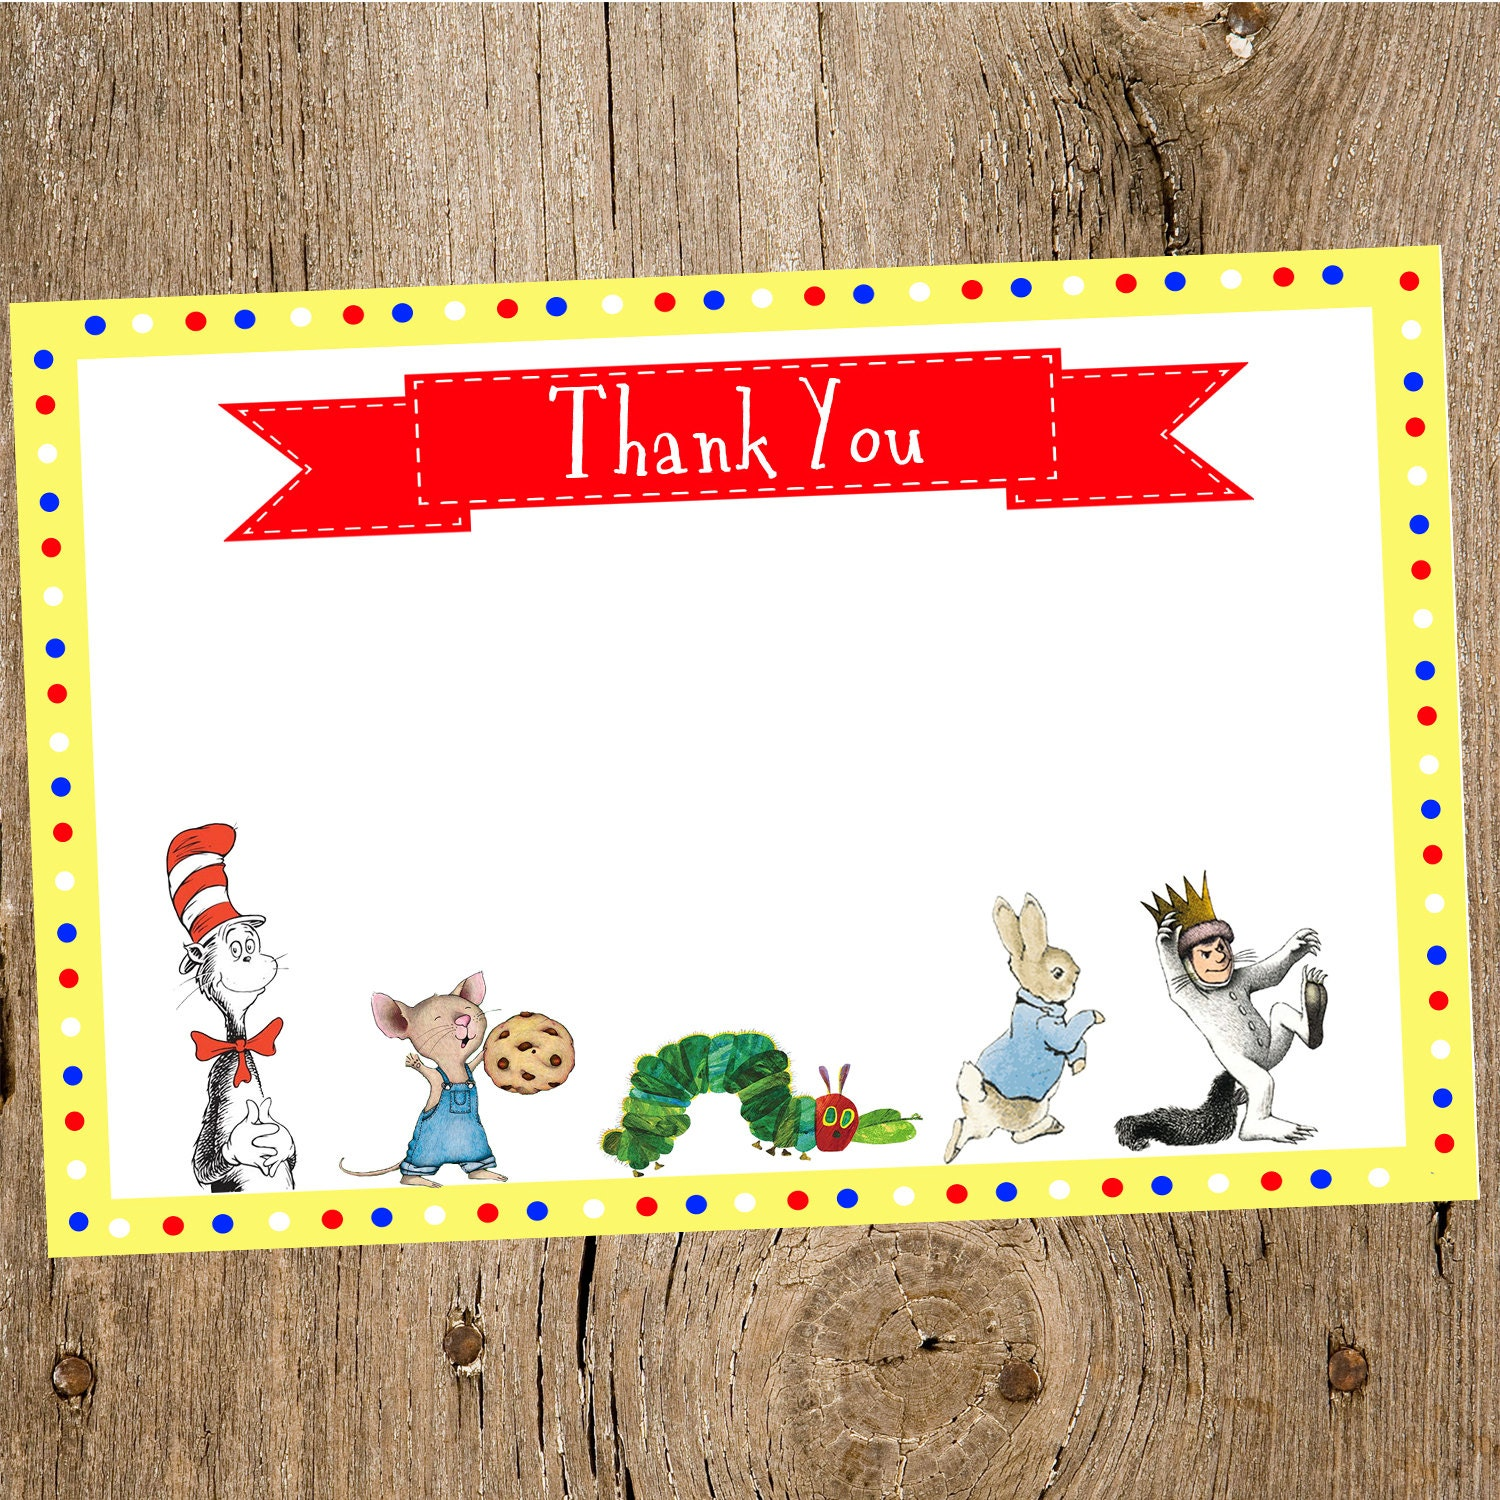 children 39 s book themed baby shower thank you card by jenleonardini